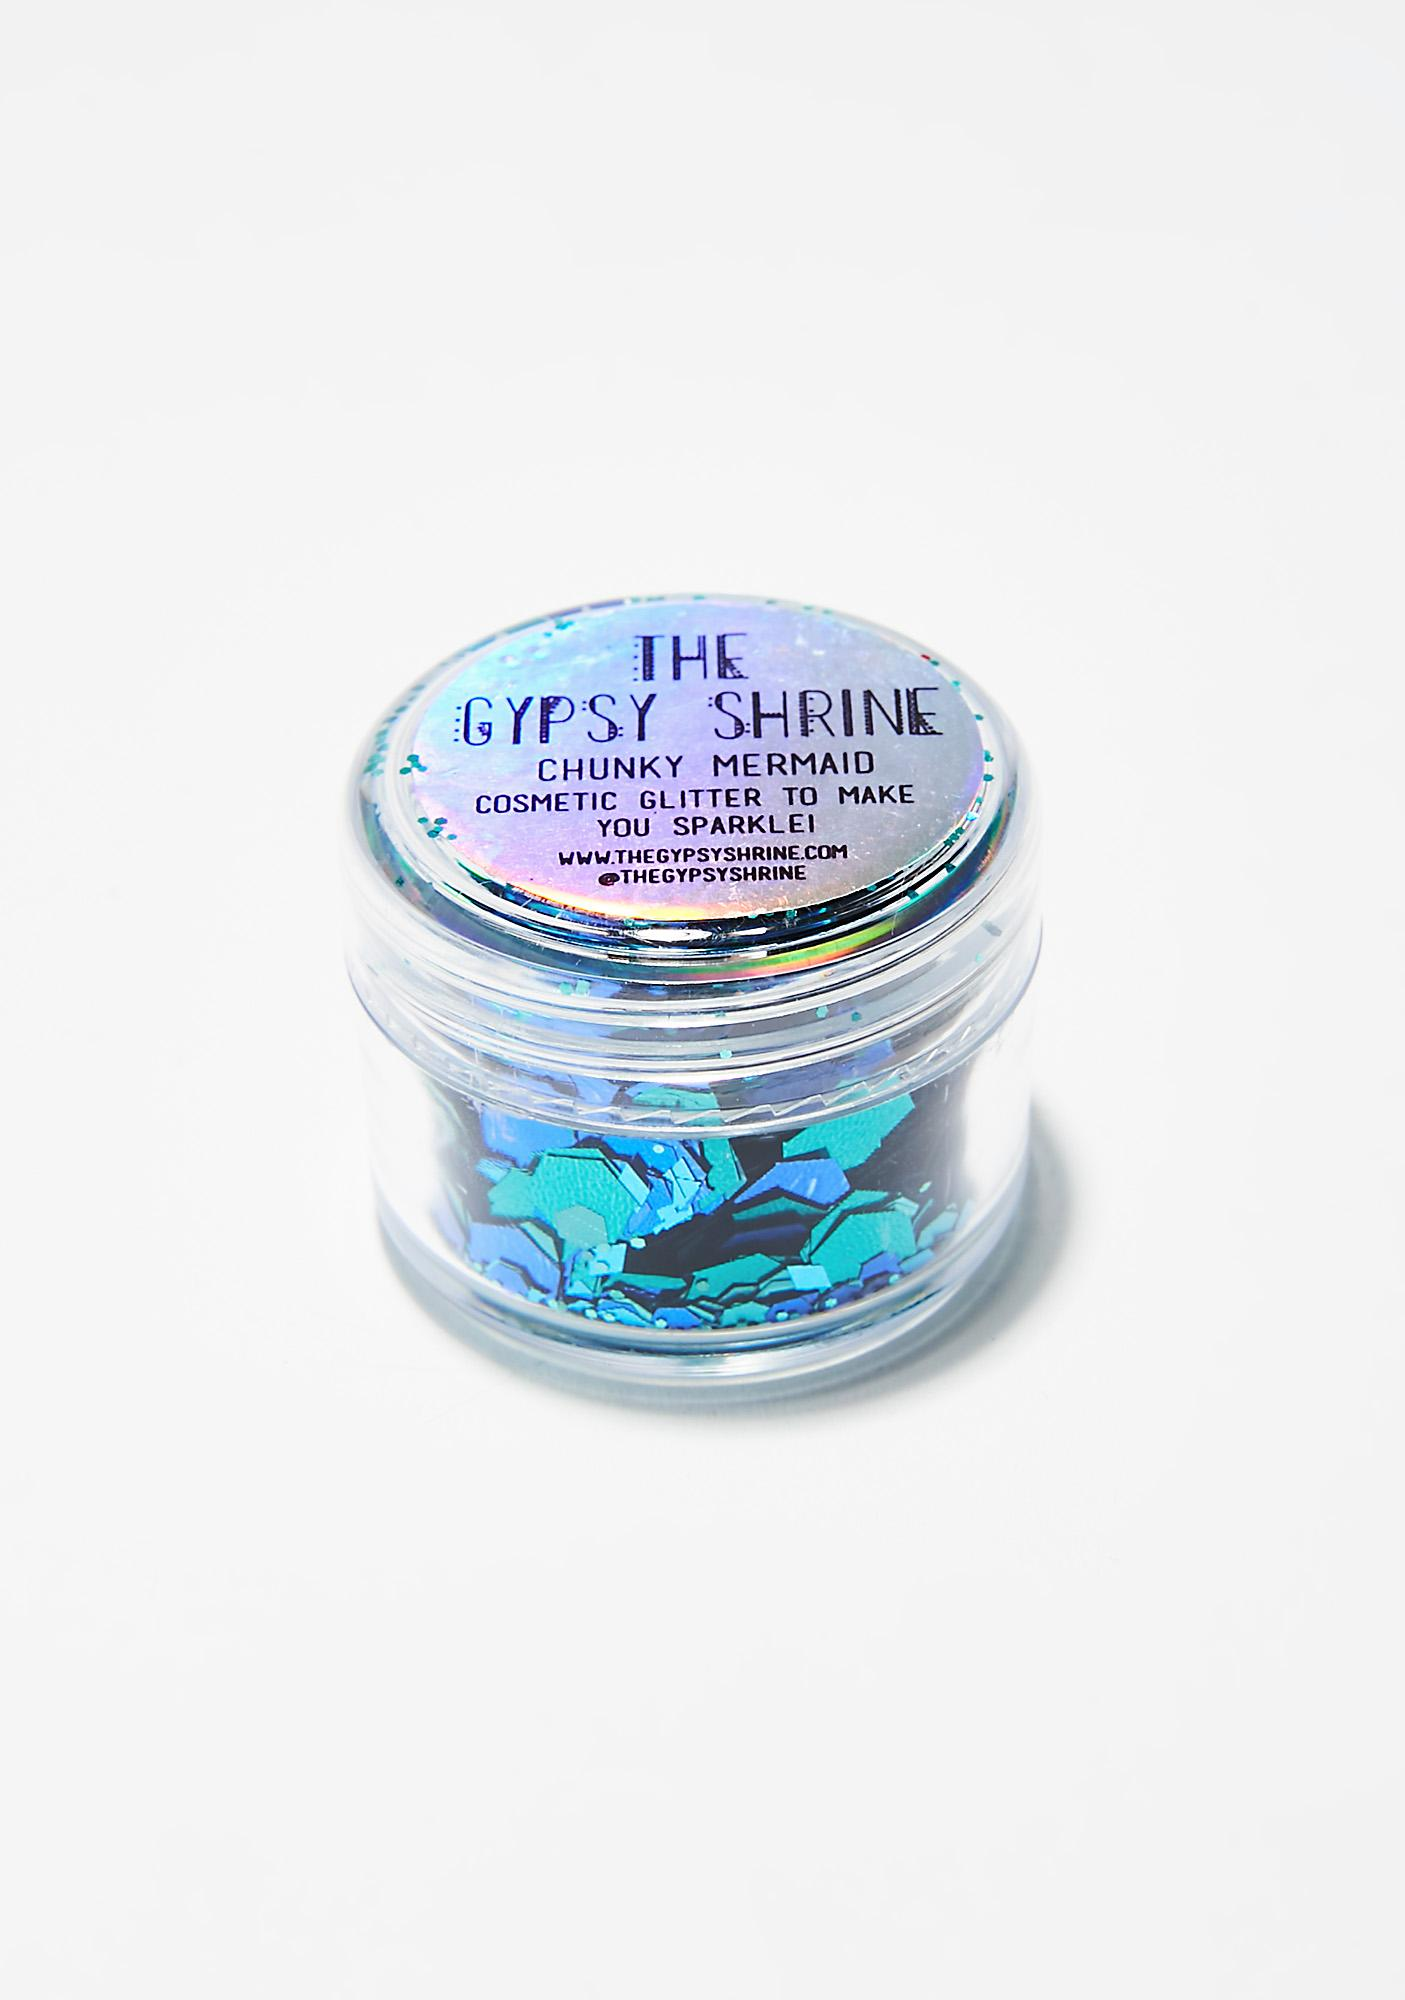 The Gypsy Shrine Mermaid Chunky Glitter